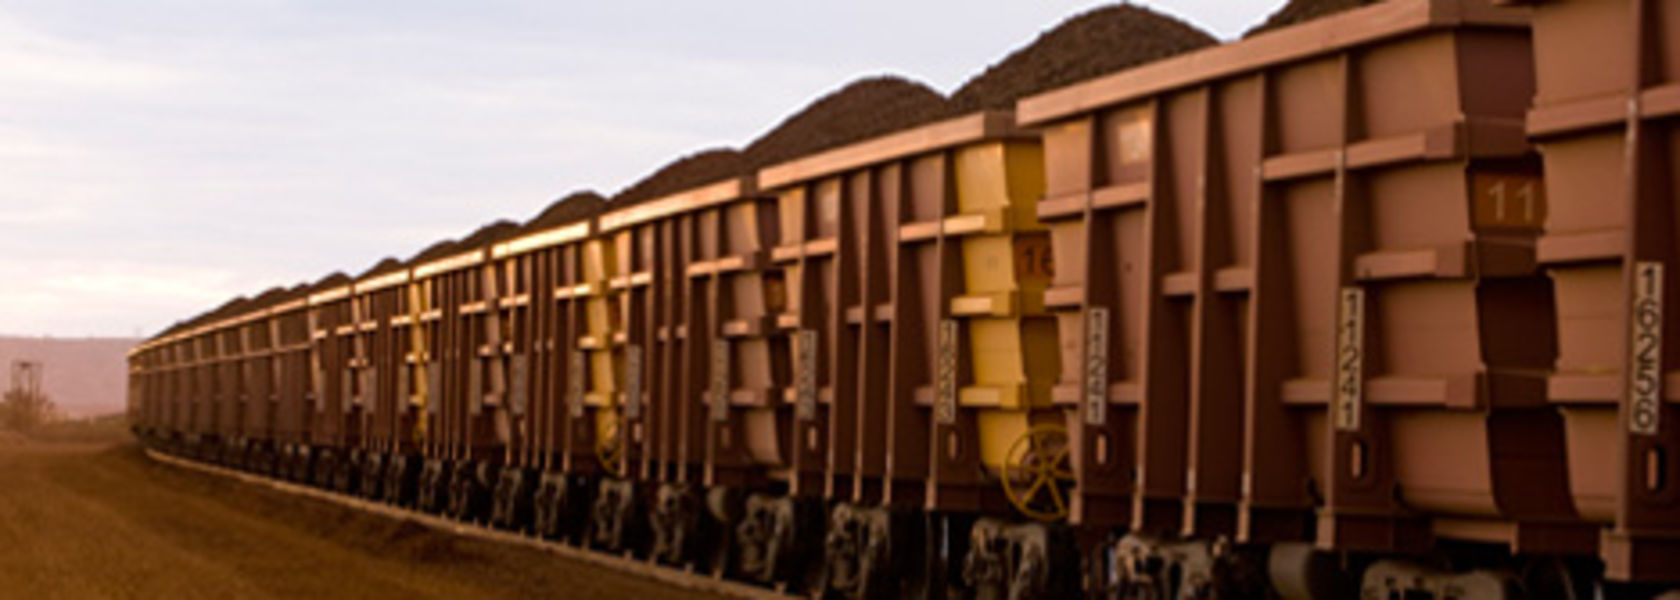 Rio Tinto invests in simulators and automation